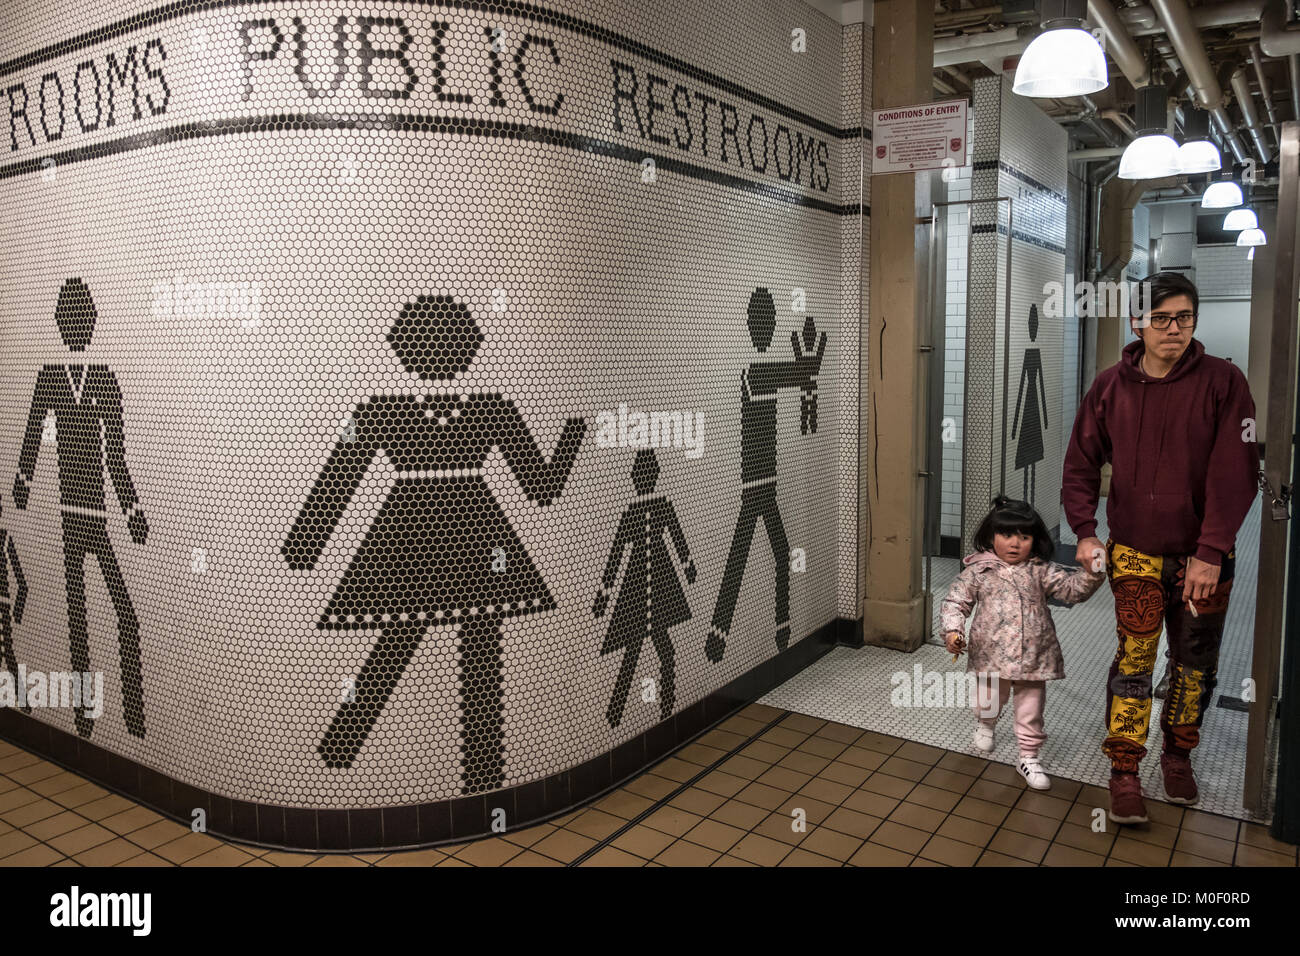 father exiting public restrooms with daughter, Seattle, Washington, USA - Stock Image